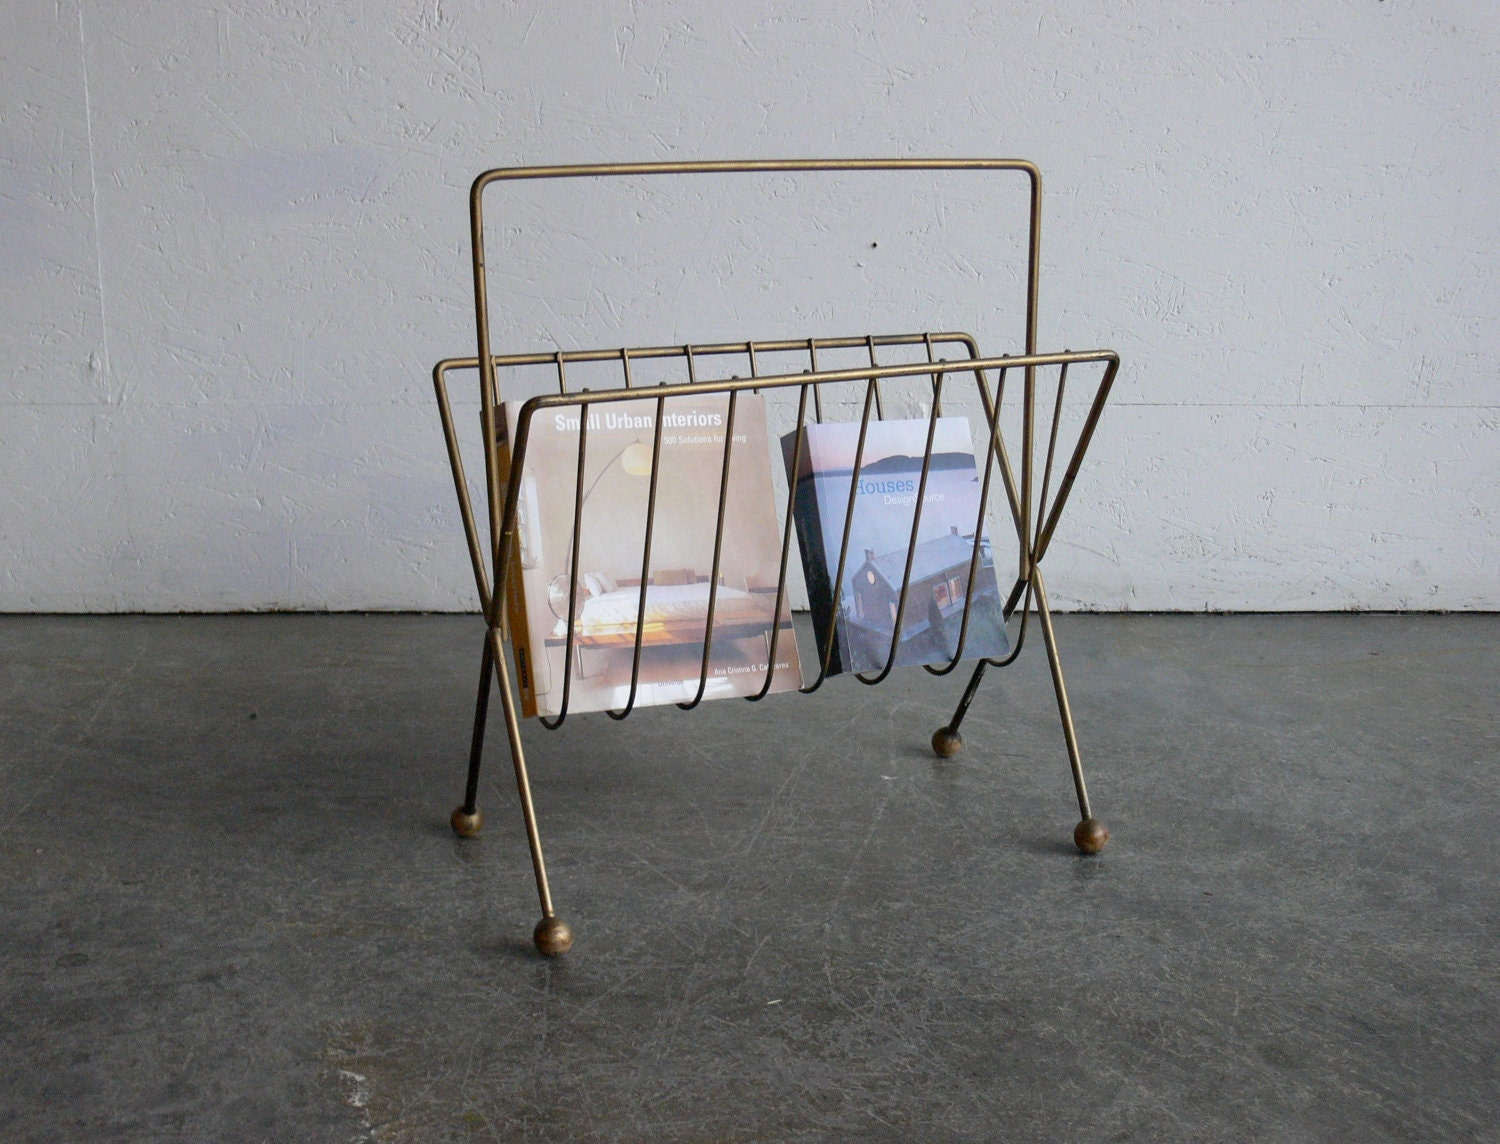 This magazine rack is designed with a rectangular This magazine rack is designed with a rectangular wood body with open sides front and back metal grill trellis design curved tops and dividers that form 3 compartments offering convenient storage and display options for homes and offices. This magazine rack's 4 tapered block feet provide sturdy support and stability.